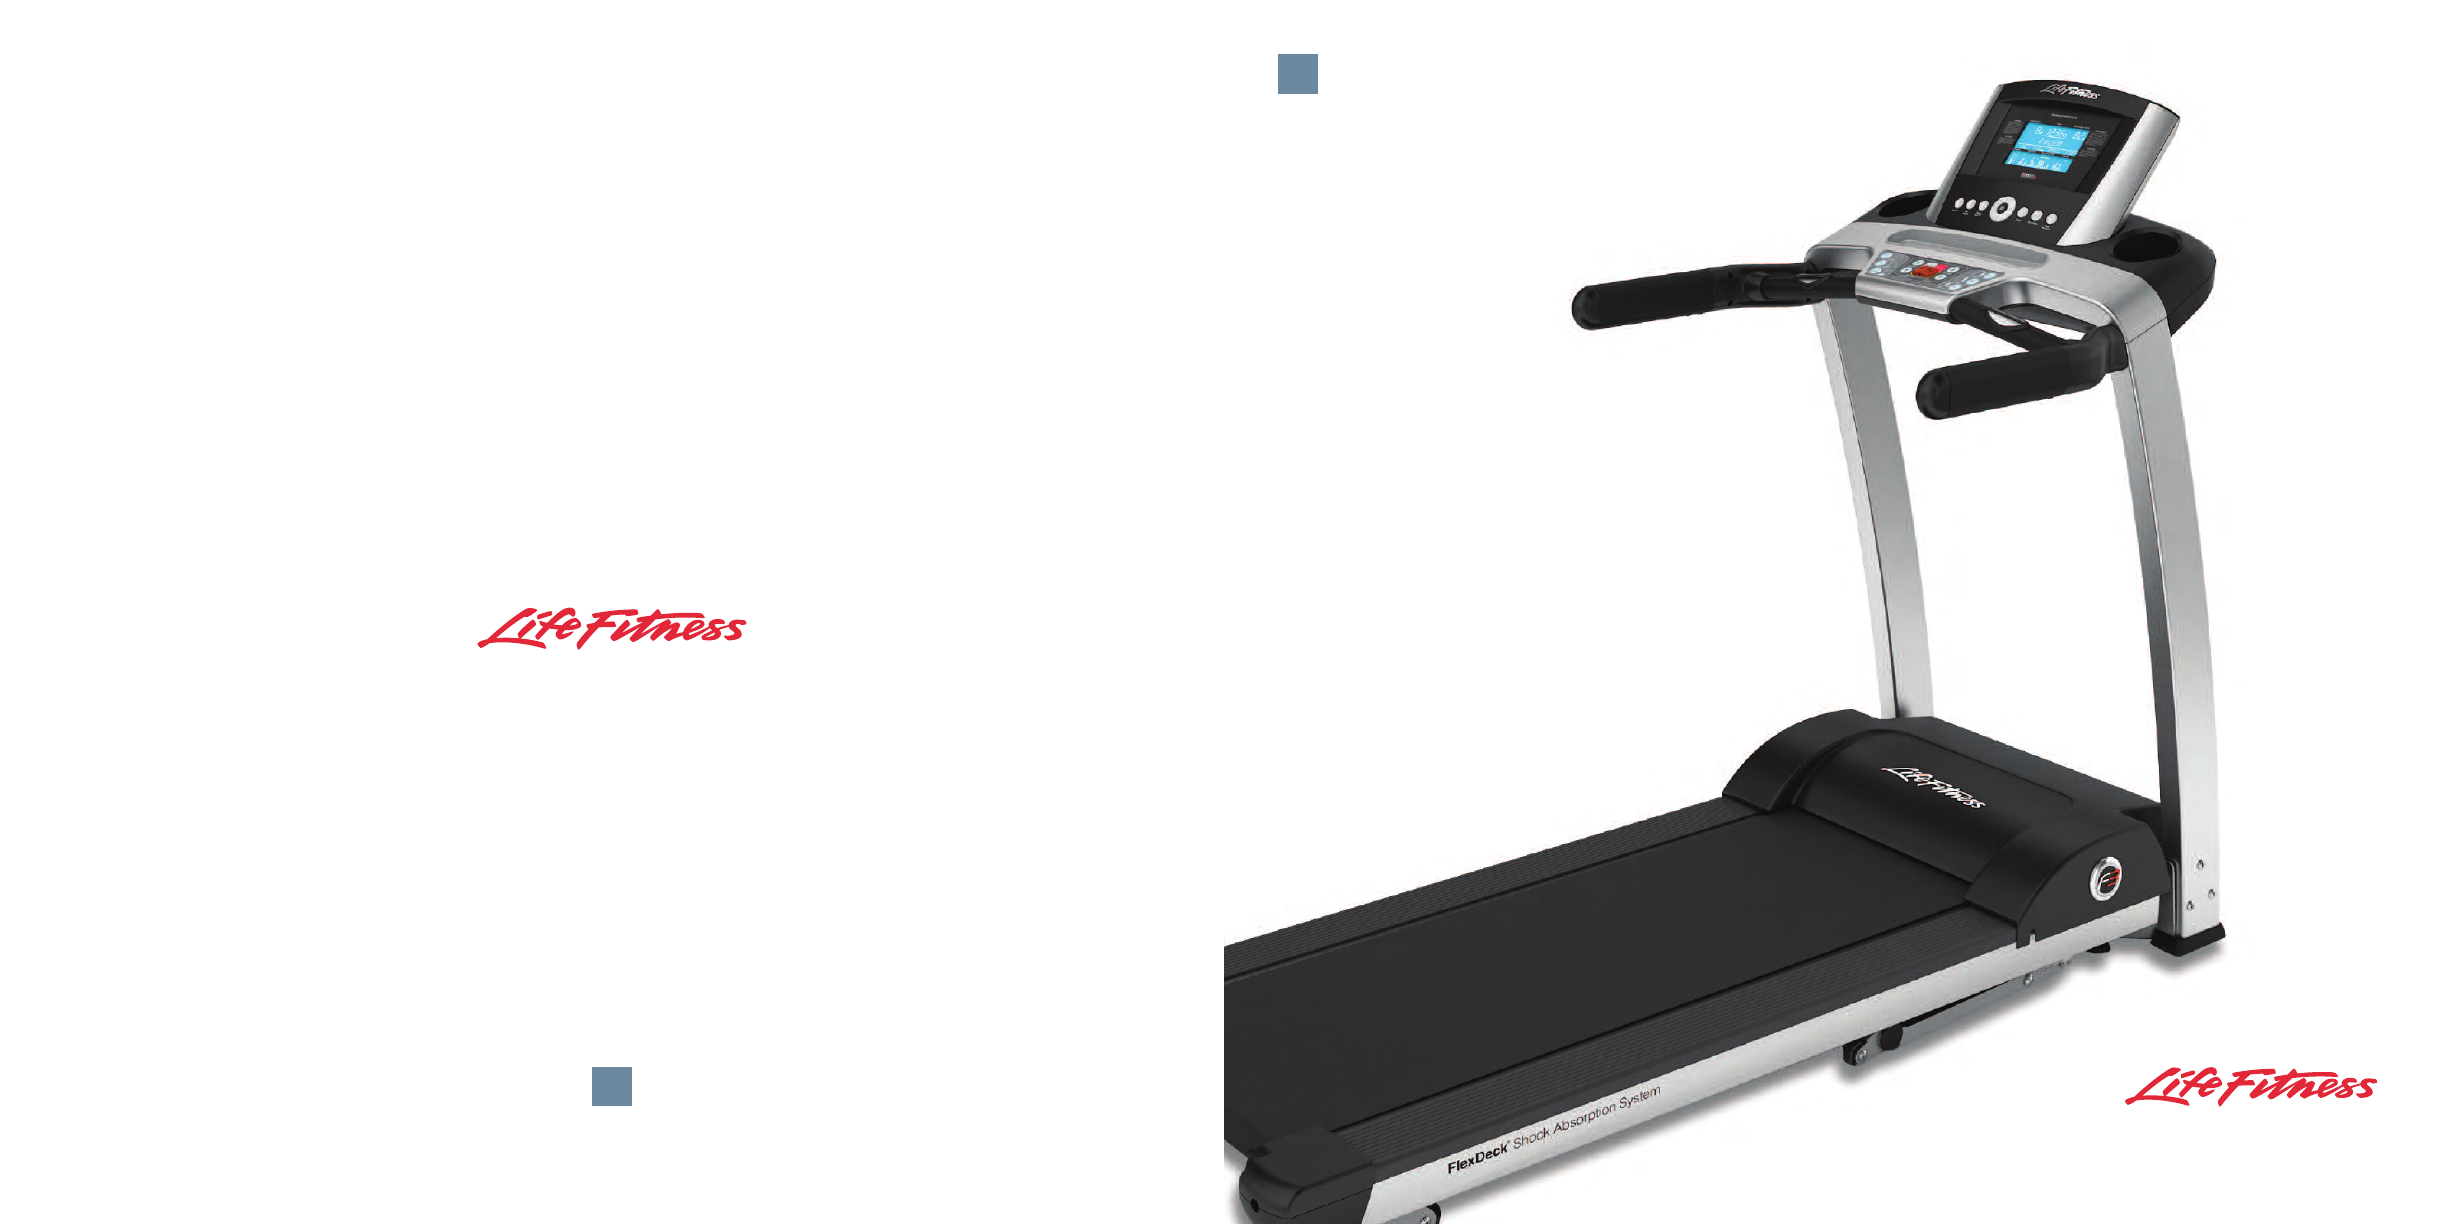 life fitness treadmill 3 series user guide manualsonline com rh fitness manualsonline com life fitness 9500hr treadmill owners manual life fitness treadmill manual t3